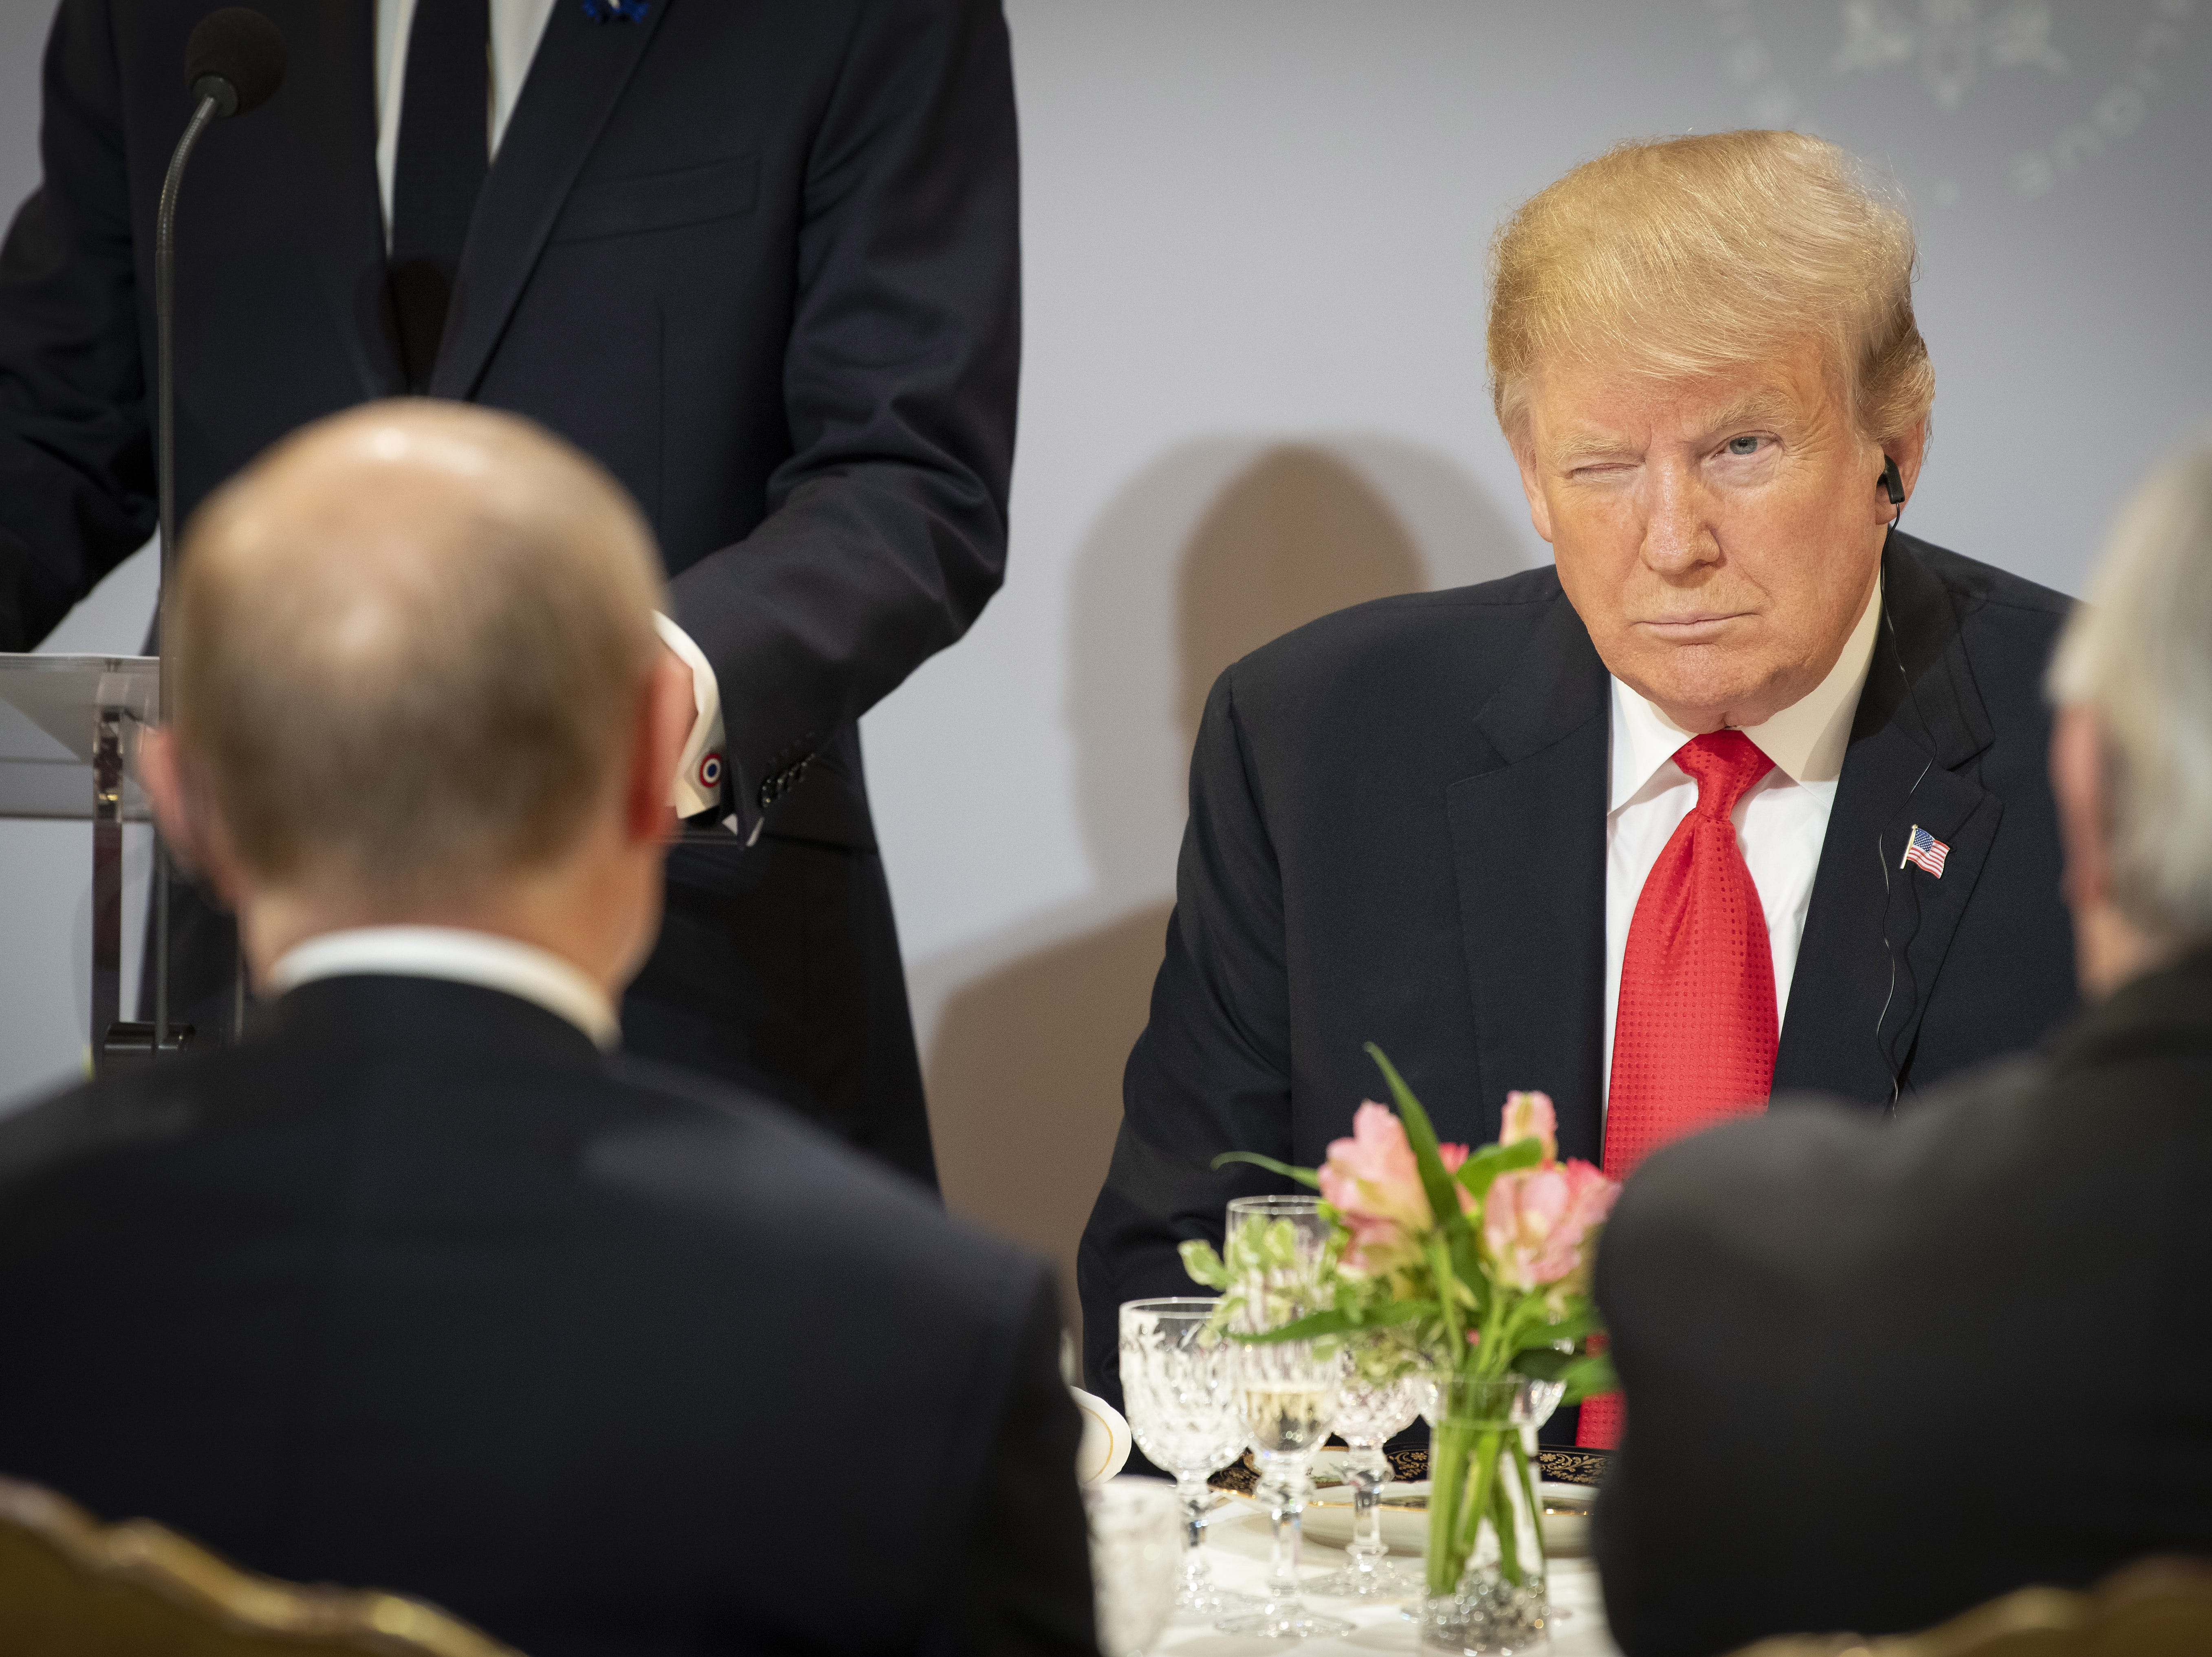 US President Donald Trump sits opposite Russian President Vladimir Putin during lunch at the Elysee Palace during the occasion of the commemoration ceremony of the 100th anniversary since the end of The First World War on Nov. 11, 2018 in Paris, France. Heads of State from around the world gather in Paris to commemorate the end of the First World War.